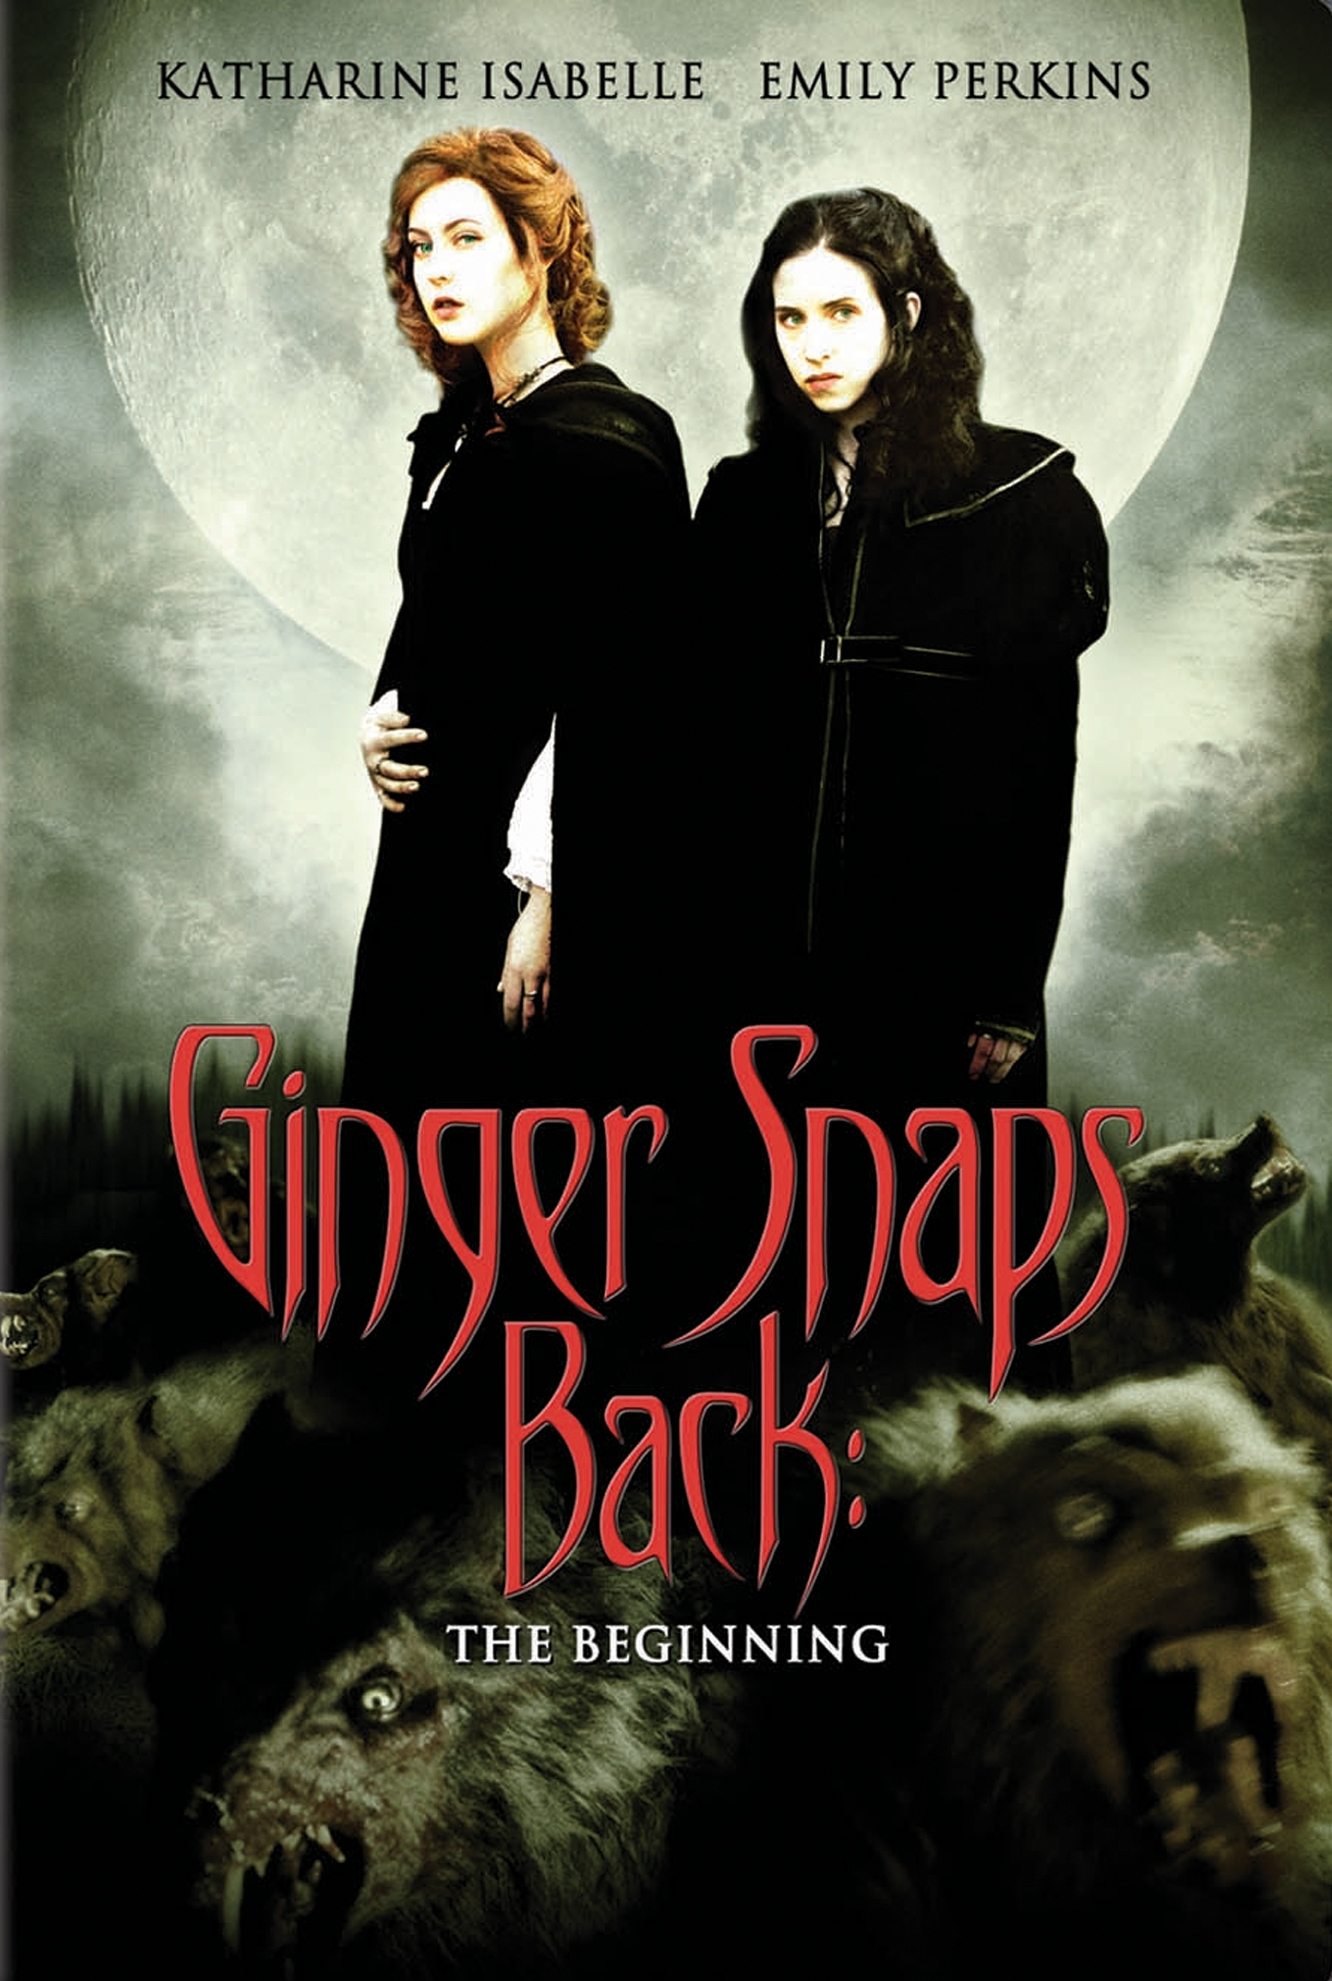 Watch Movie Ginger Snaps Back The Beginning